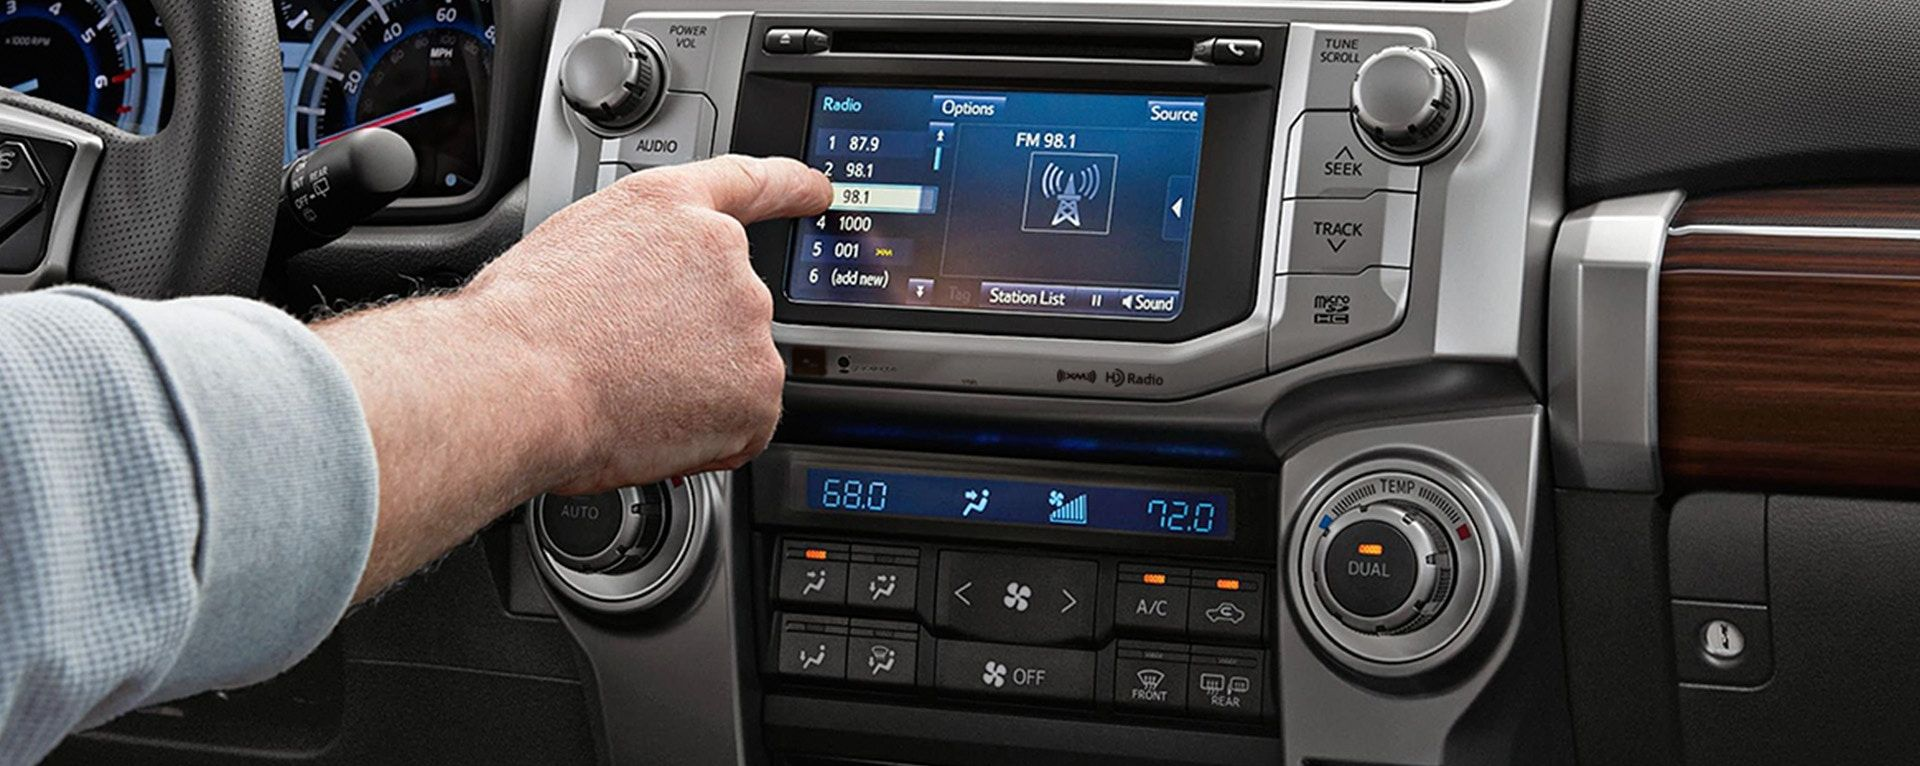 Seamless Connectivity in a Toyota SUV